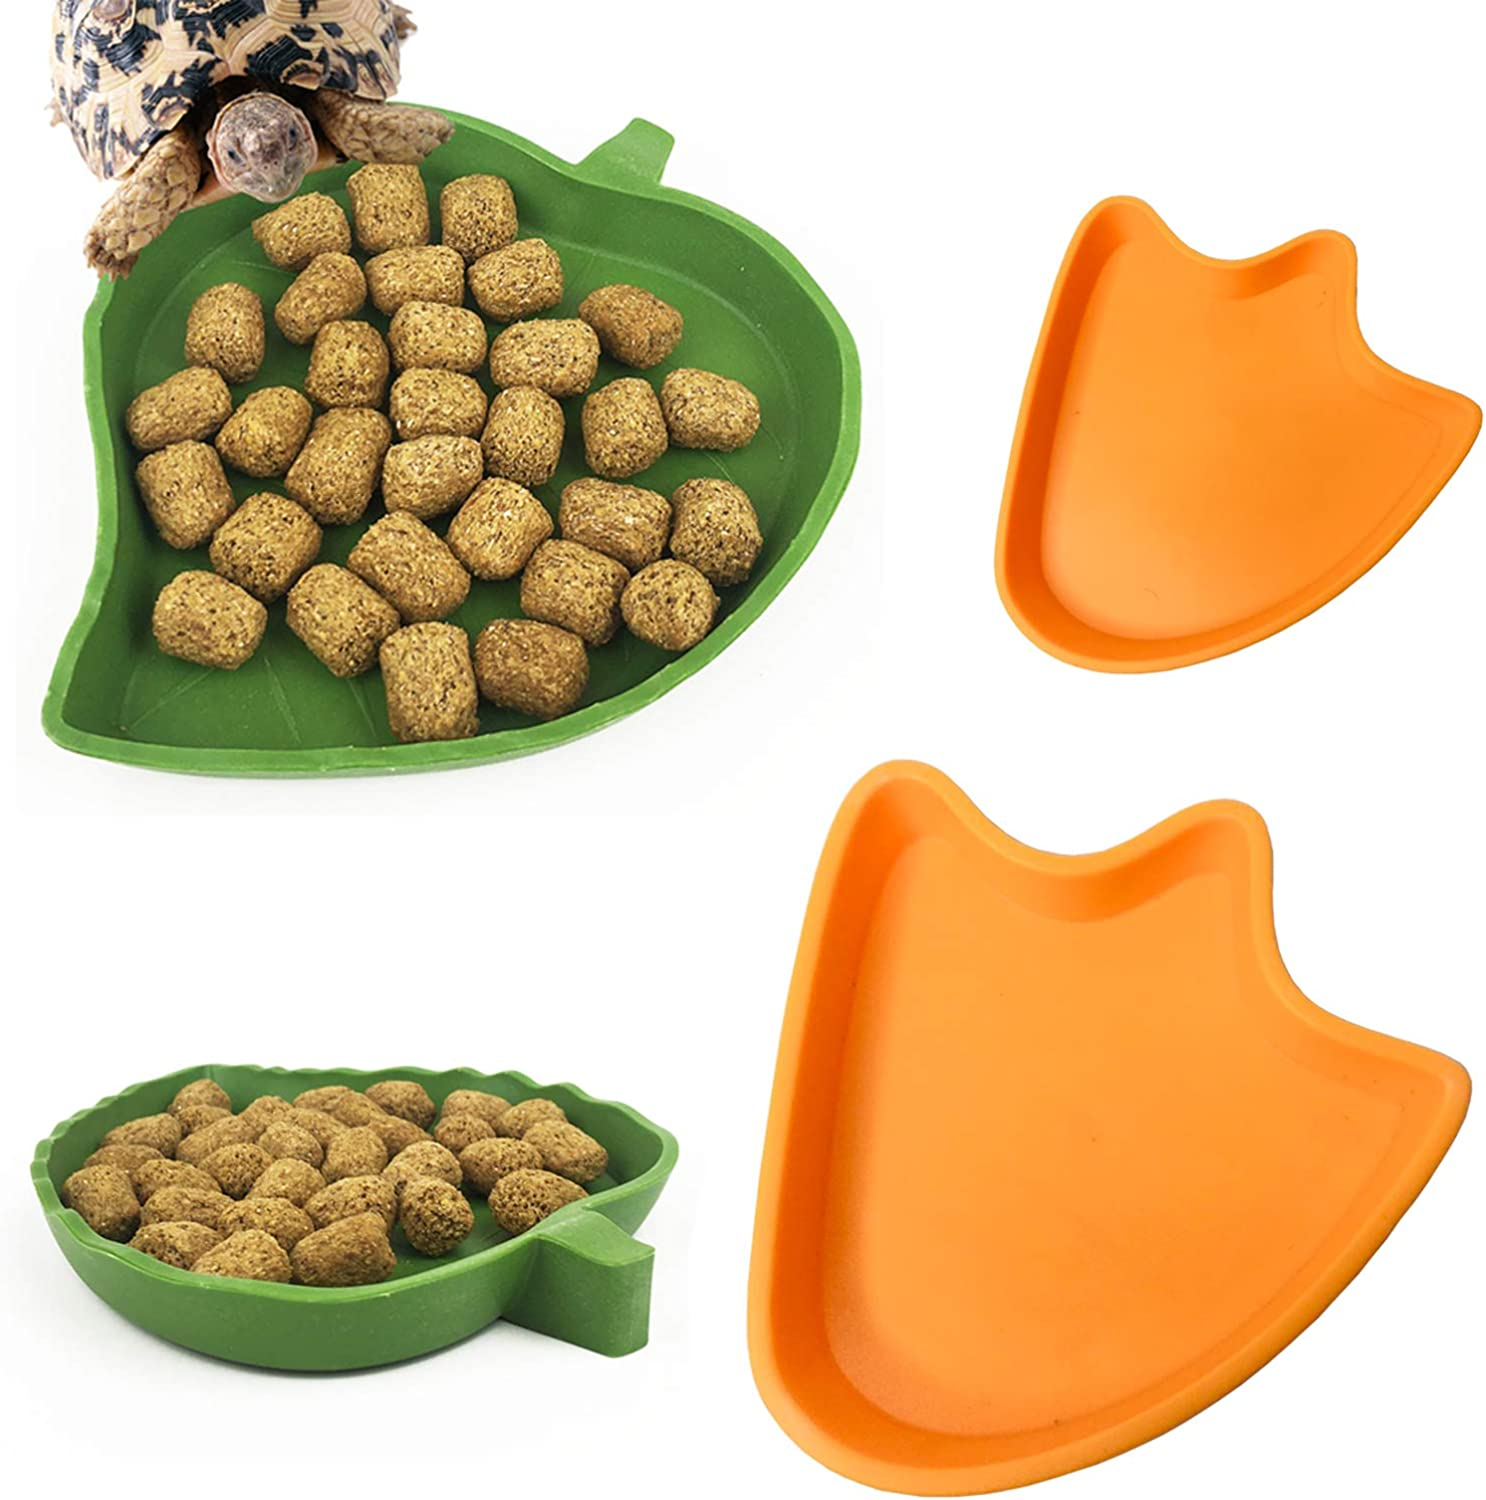 kathson Leaf Reptile Food Water Bowl Lizard Dish Plate Aquarium Ornament for Tortoises Snake Crawl and Other Small Reptiles Pets Drinking and Eating(4 Pack)